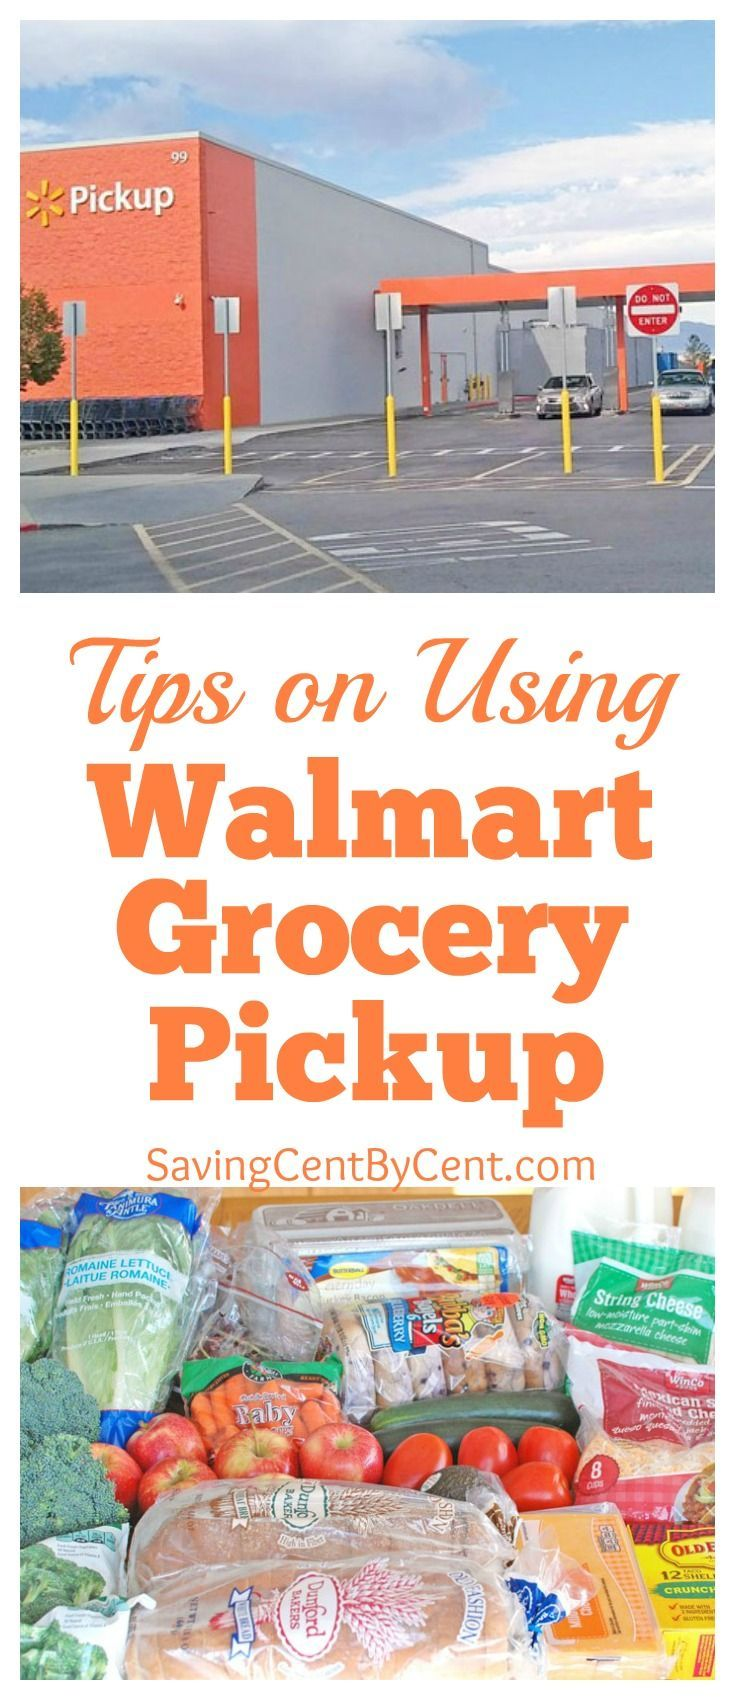 Tips on Using Walmart Grocery Pickup + $10 Off Your First